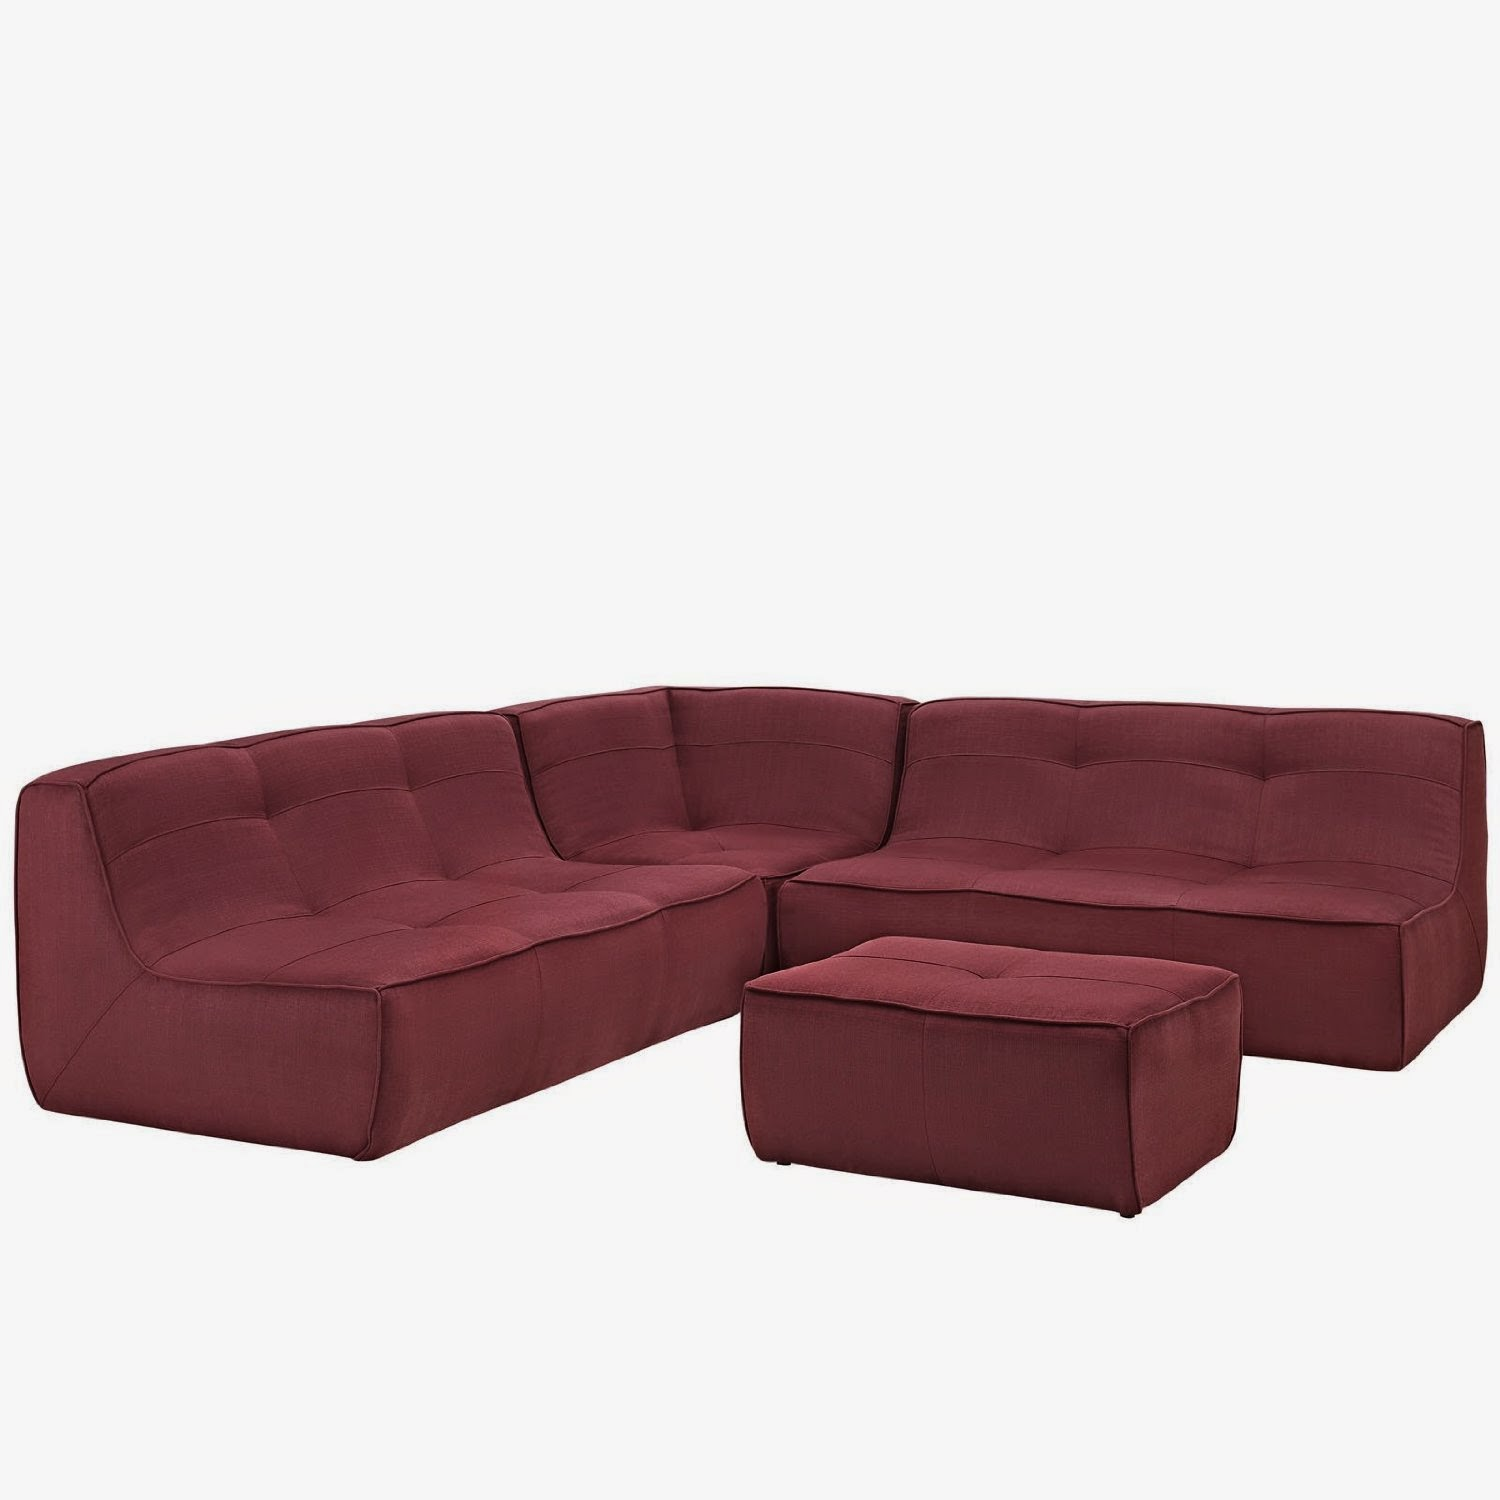 Contemporary Leather Sofas For Sale Best Power Reclining Sofa Curved Couch